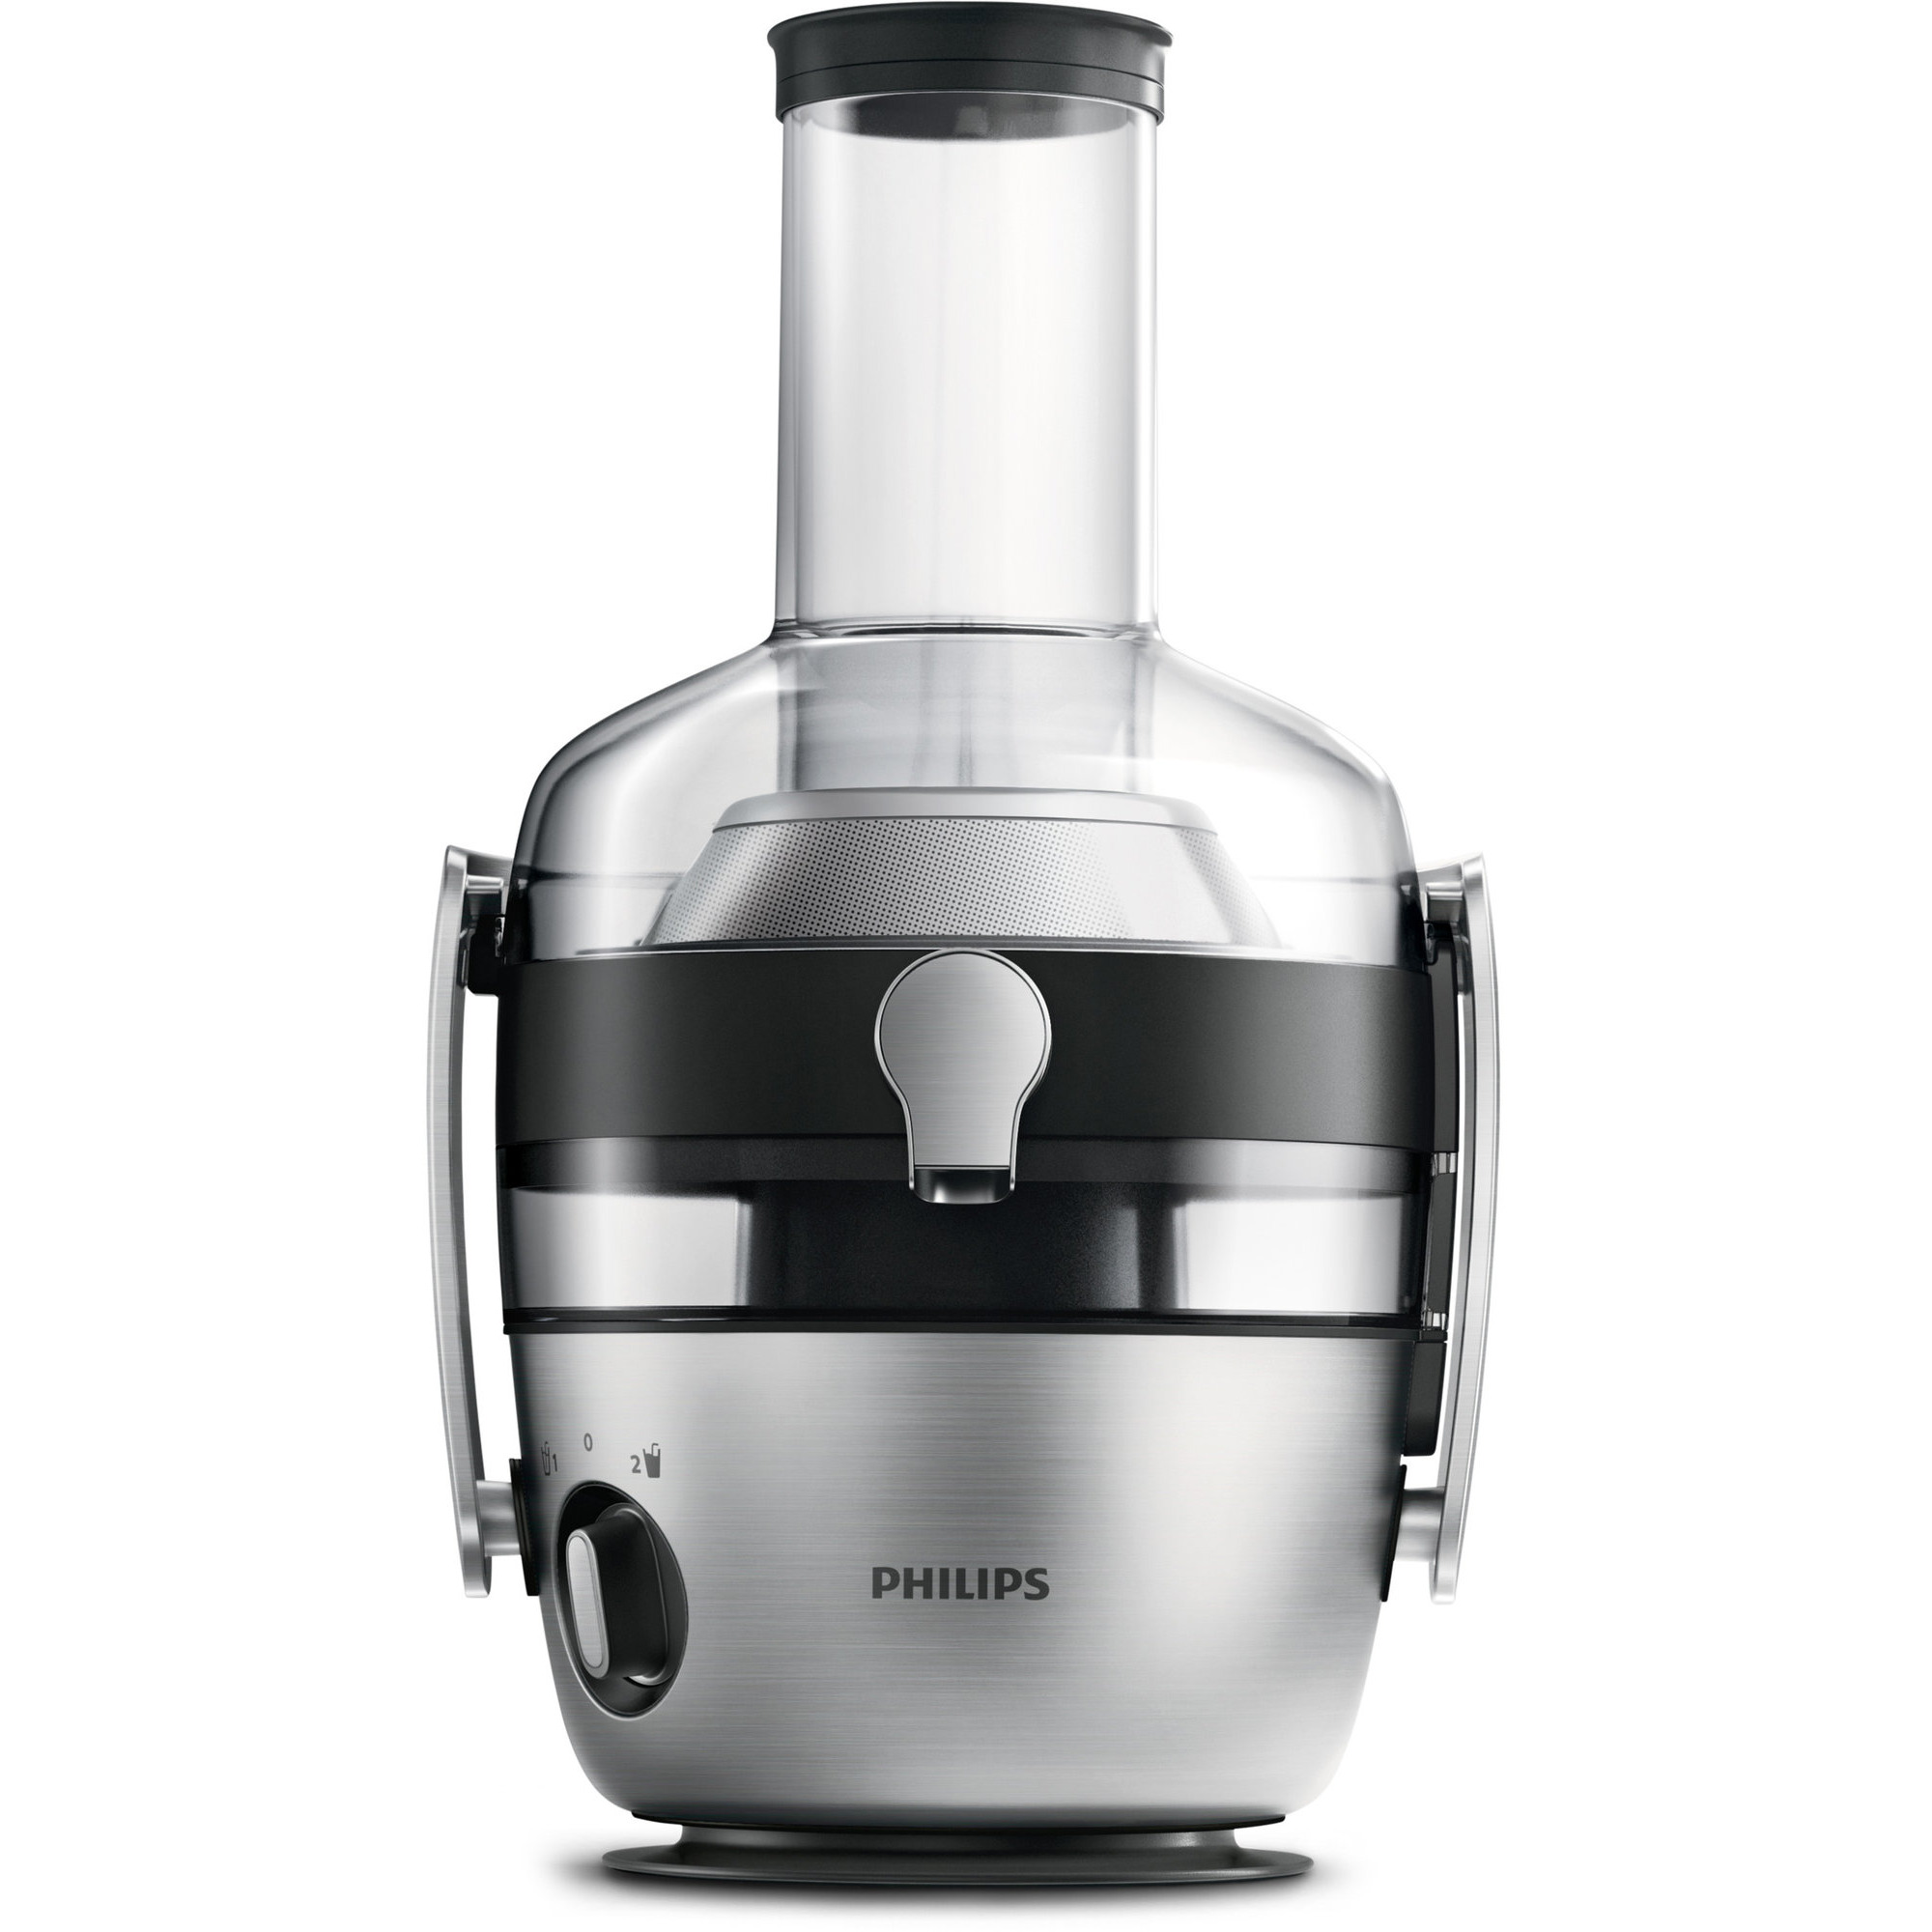 Philips HR1922/20 Juicer Avance 1200 W FiberBoost